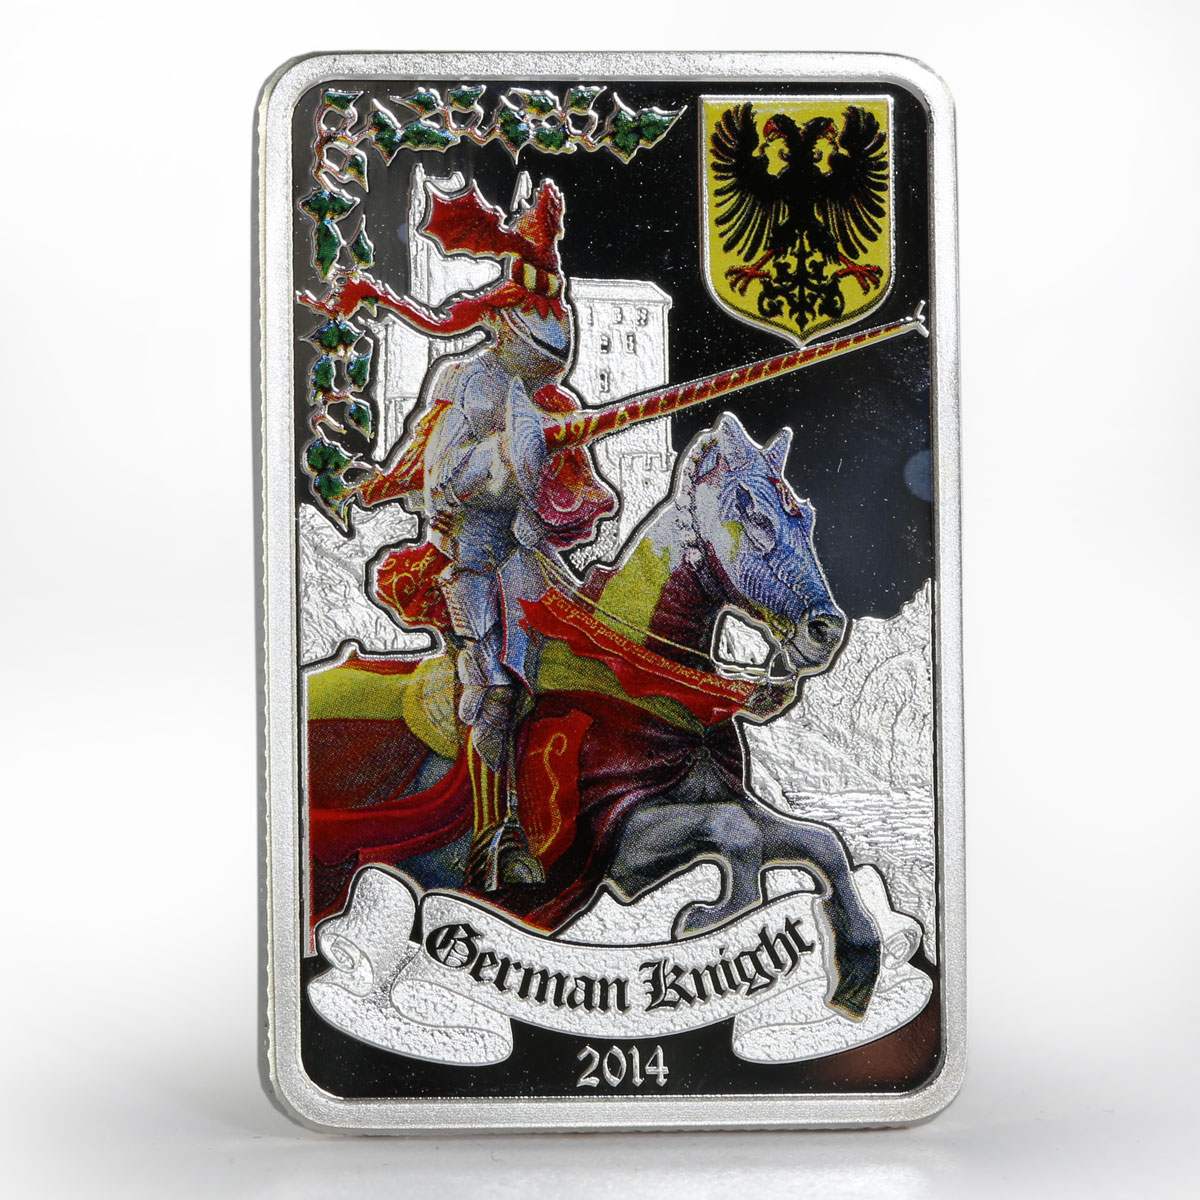 Benin 1000 francs German Knight colored proof silver coin 2014